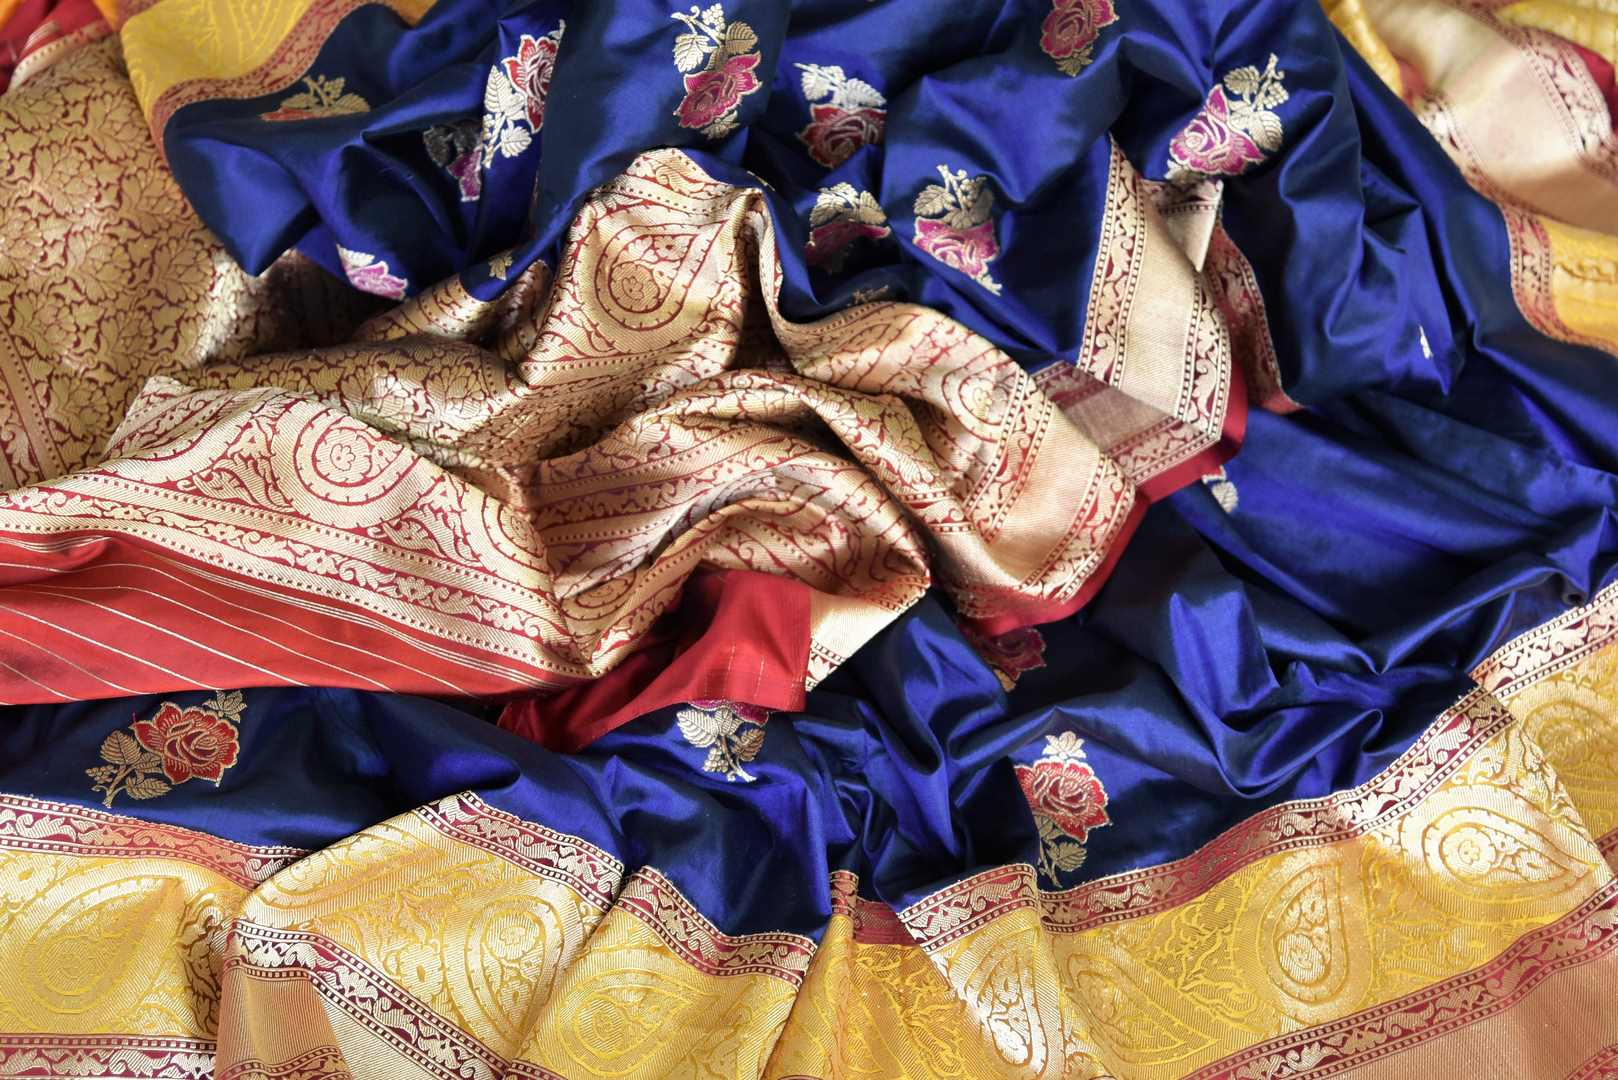 Exude elegance in our royal blue banarsi silk authentic sare. The subtle contrast of cream zari border complemented with the deep rich red buta work blouse is indeed a spectacular sight. Style this to weddings and parties. Shop designer silk sari, chiffon saree, linen sari online or visit Pure Elegance Store, USA. -details